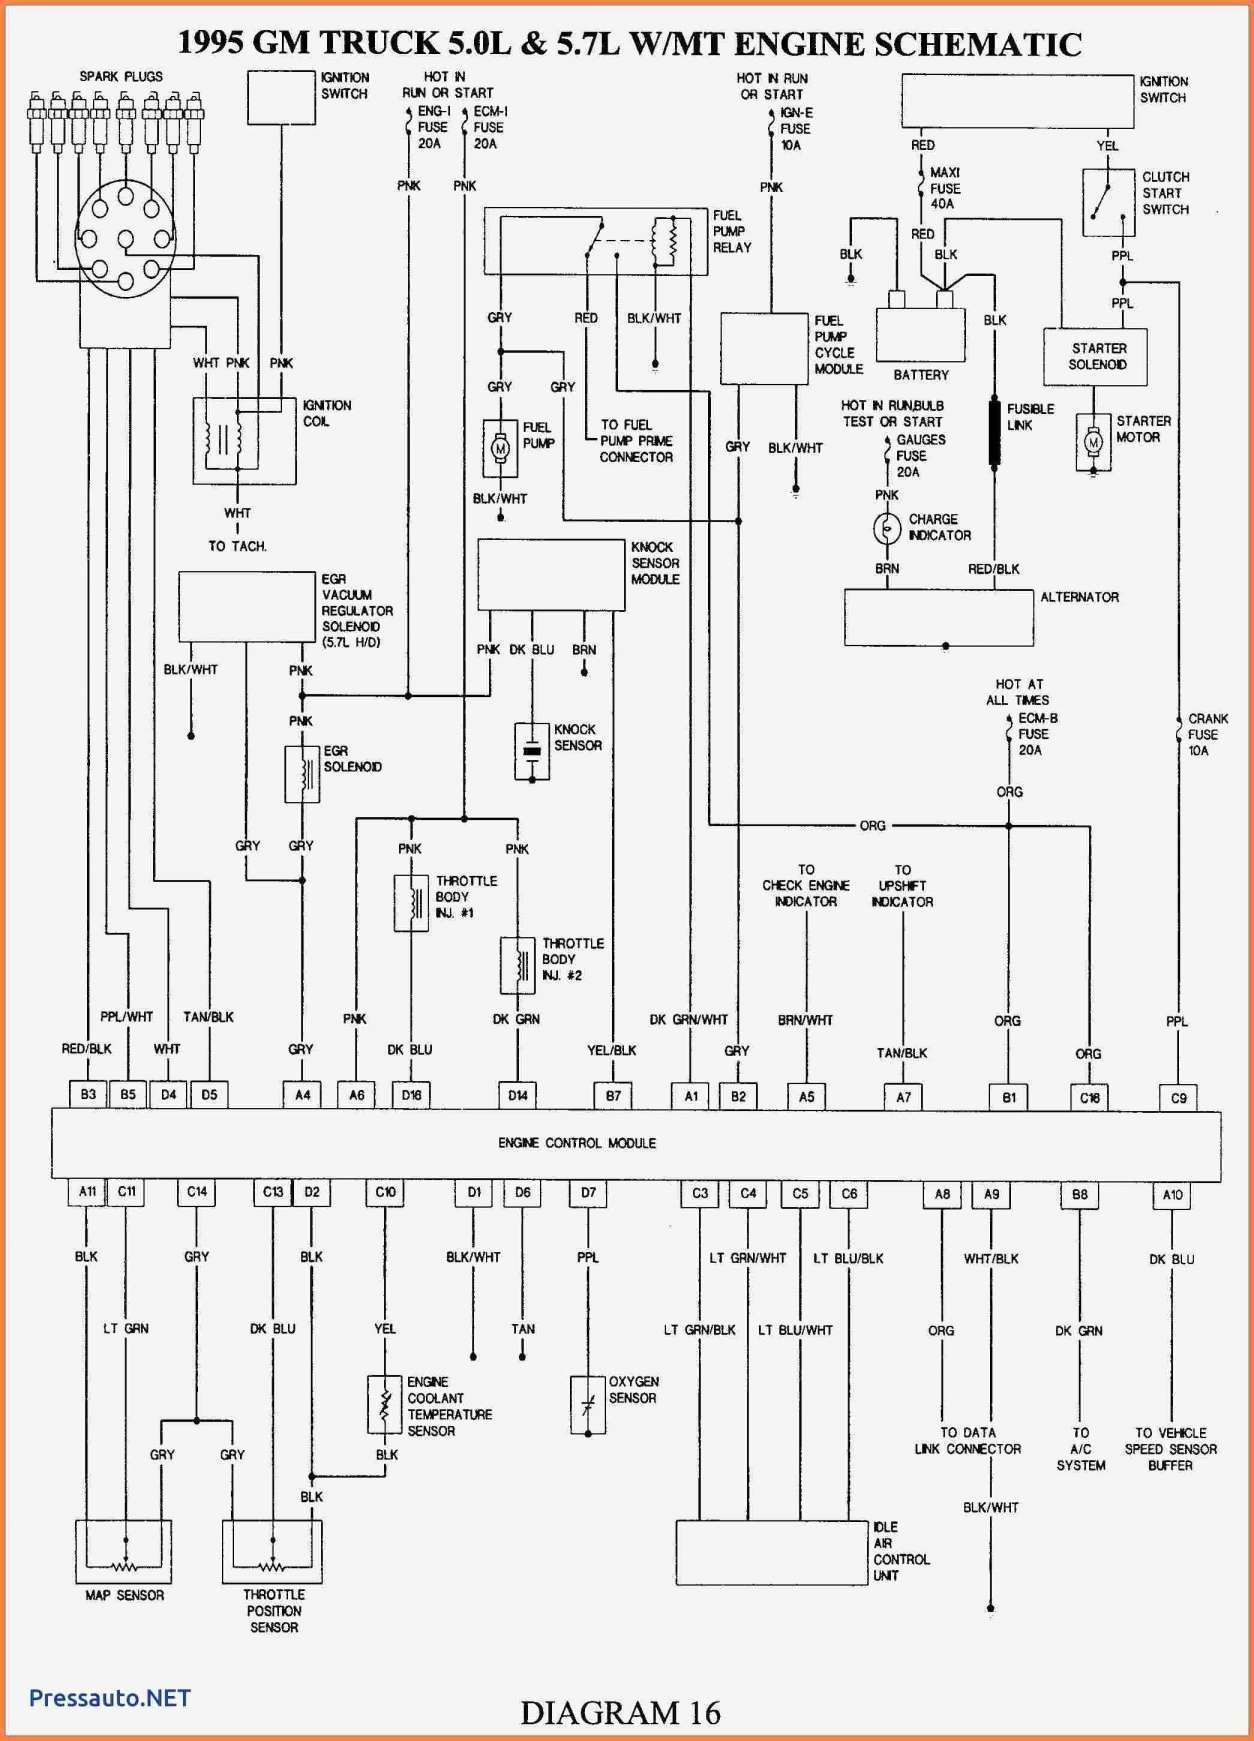 1998 Chevy Silverado Wiring Harness - Wiring Diagram Models smash-have -  smash-have.zeevaproduction.it | 1998 Chevrolet 5 0 Wiring Harness Breakdown |  | smash-have.zeevaproduction.it